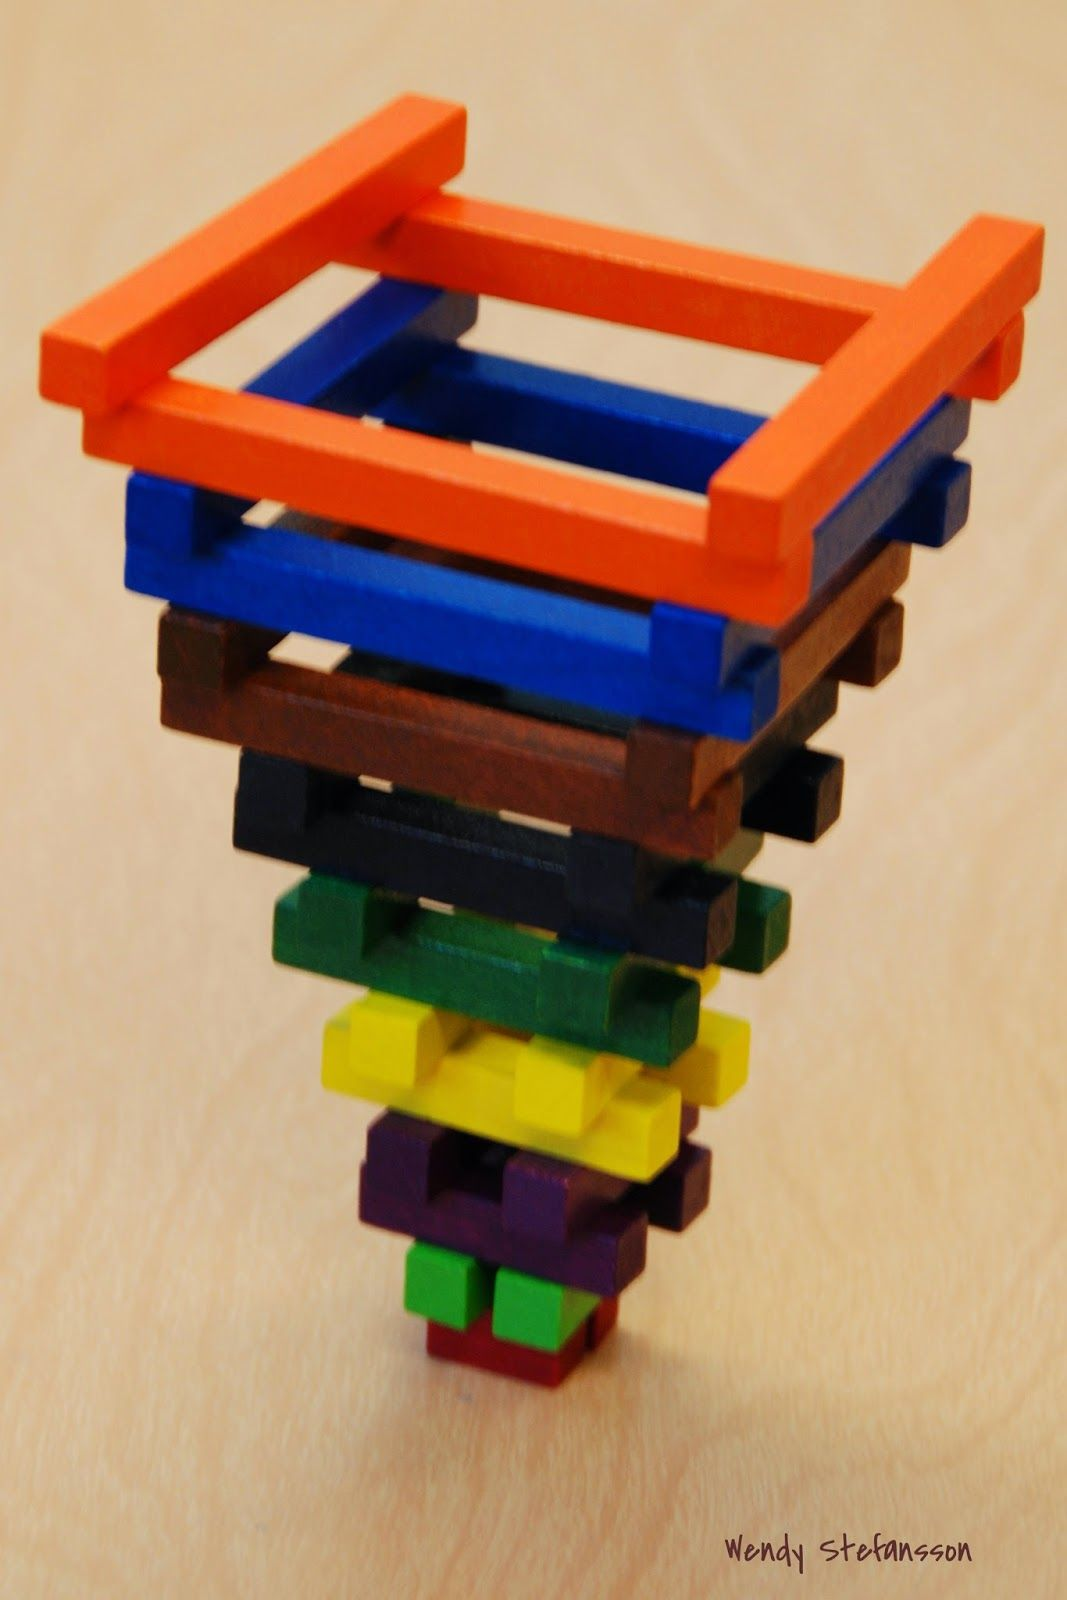 Zen And The Art Of Cuisenaire Rods